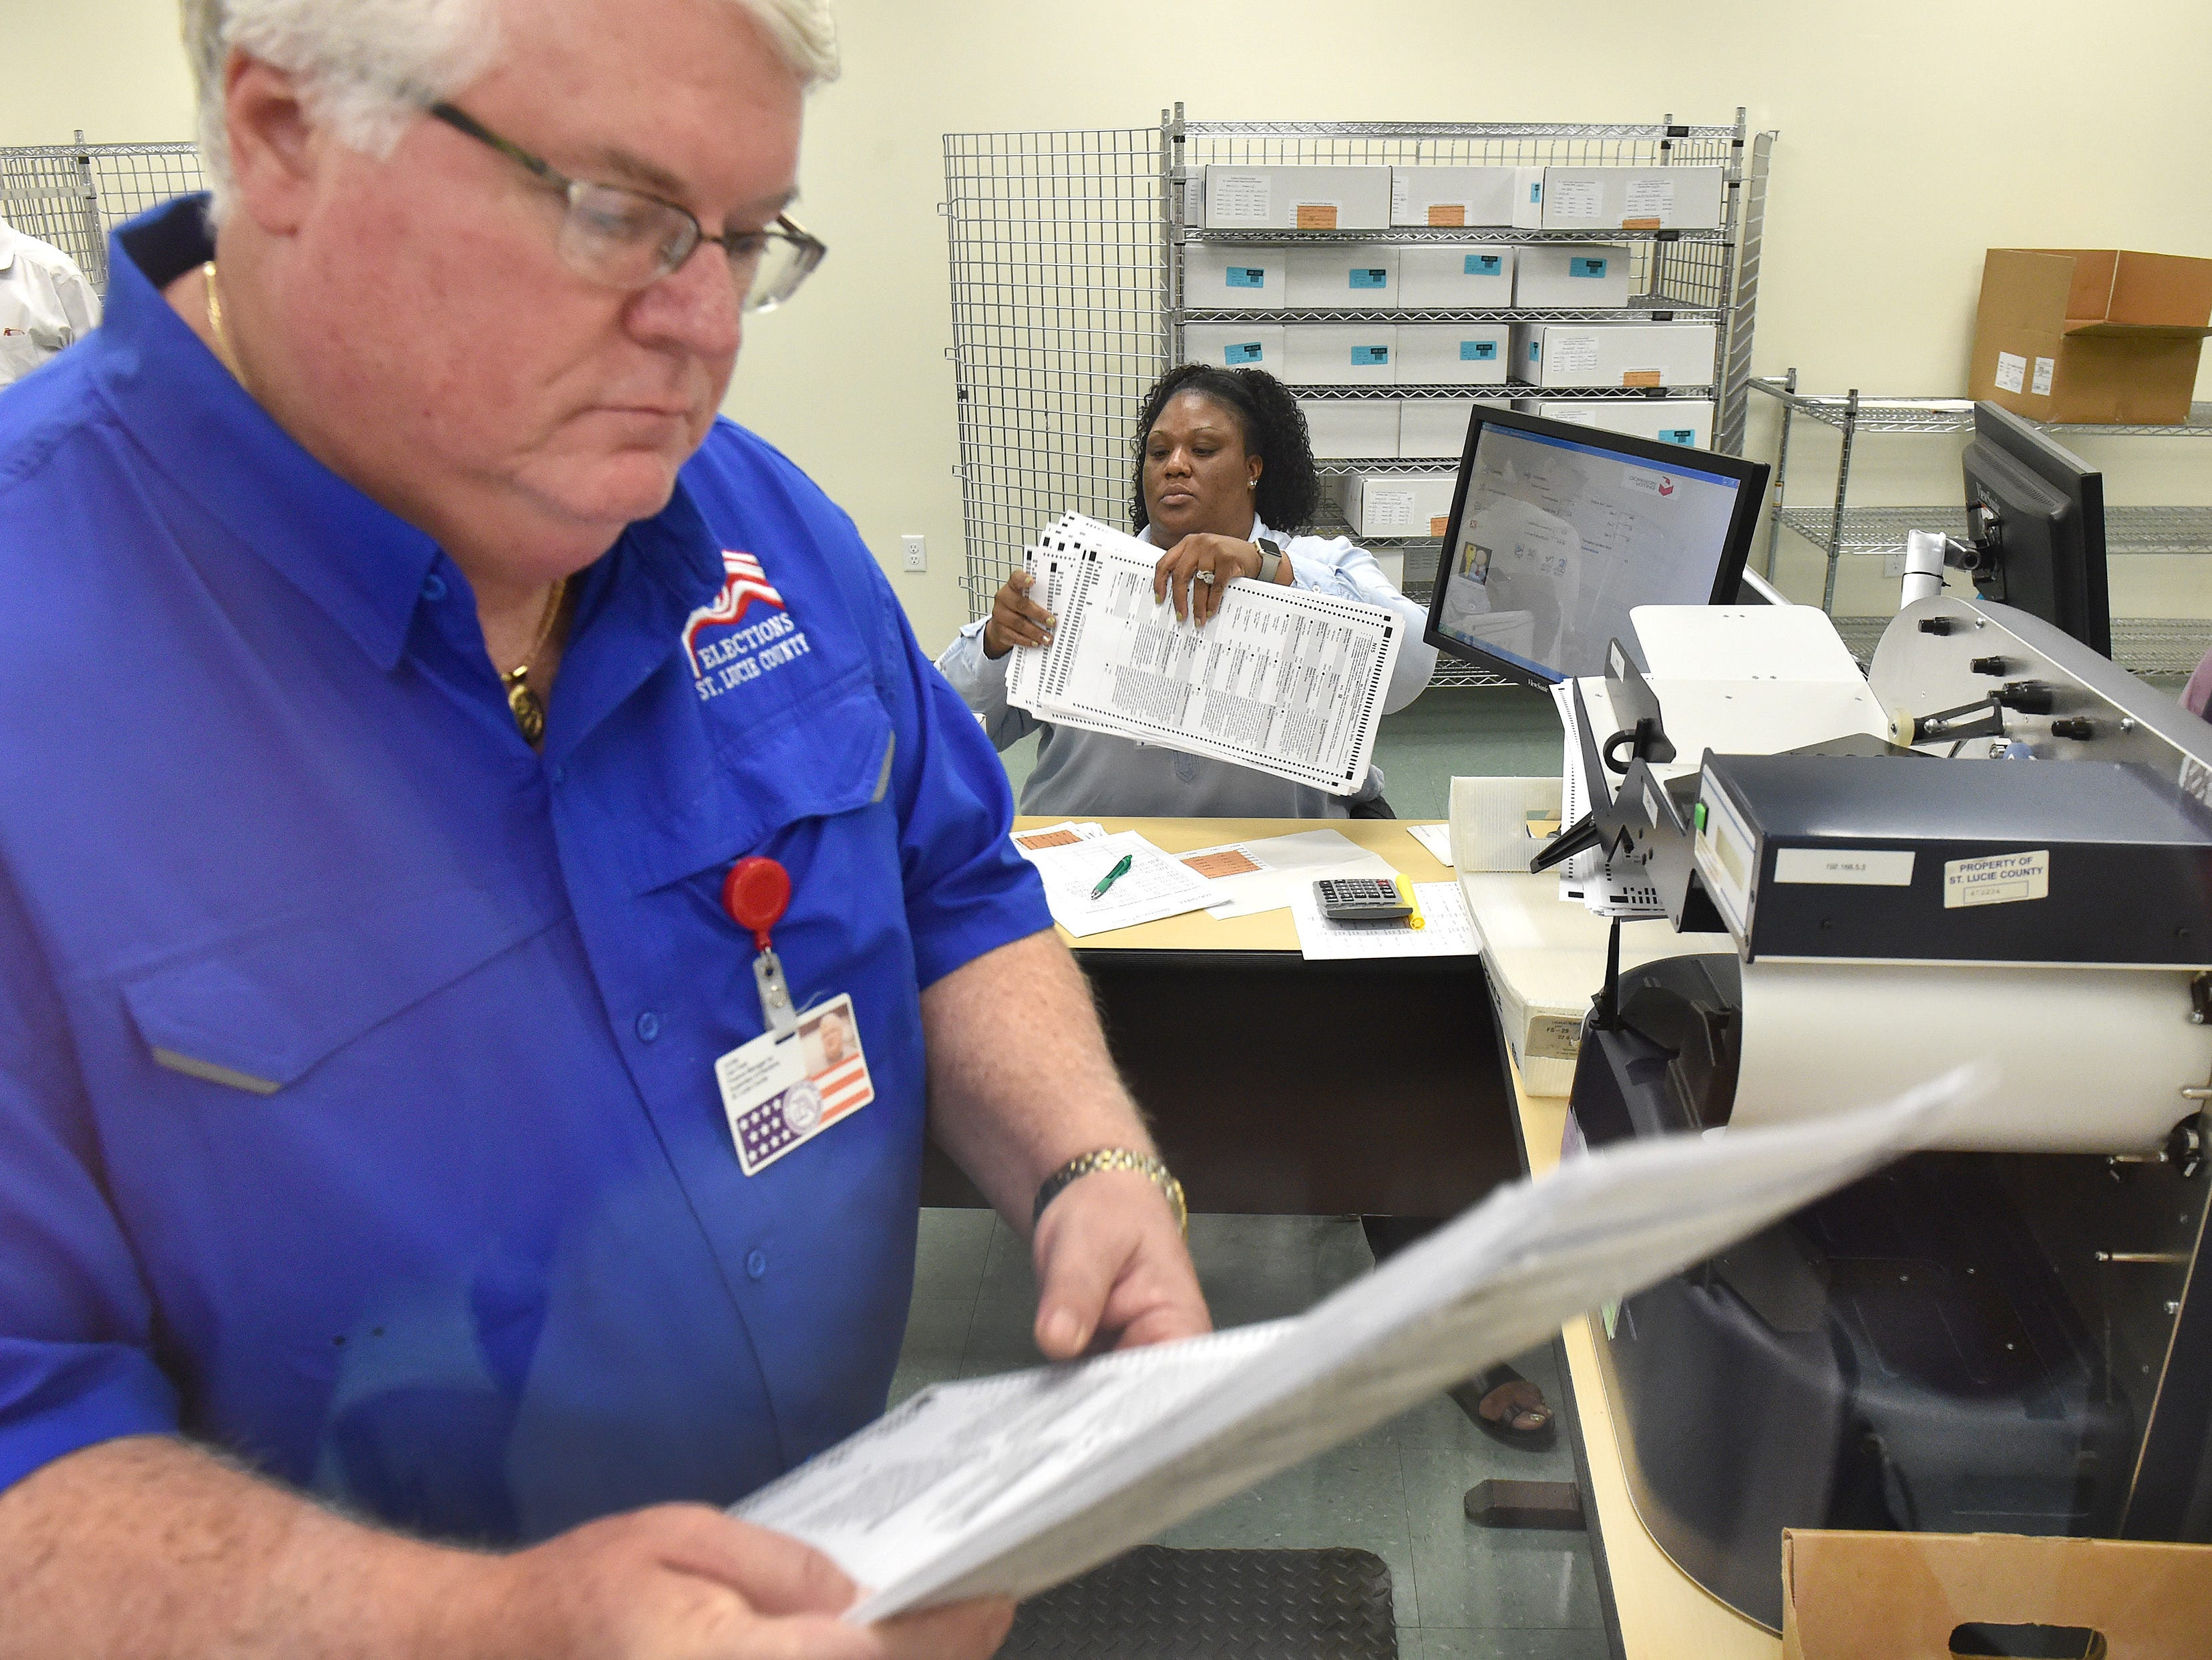 """St. Lucie County Supervisor of Elections staff members Dan Field (front), finance manager, and Natasha Bailey, elections system operator, are seen through a glass window separating the recount staff from the witnesses and media, as they help with a machine recount of 38,853 absentee ballots during the first day of Florida Secretary of State ordered machine recount of the Governor, U.S. Senate, and the Florida Commissioner of Agriculture contests, at the St. Lucie County Supervisor of Elections office Monday, Nov. 12, 2018, in Fort Pierce. """"It's important to do this because every vote counts,"""" said Gertrude Walker, St. Lucie County Supervisor of Elections. """"And this is an example of us really trying to determine who won the election and making sure every vote did count."""""""